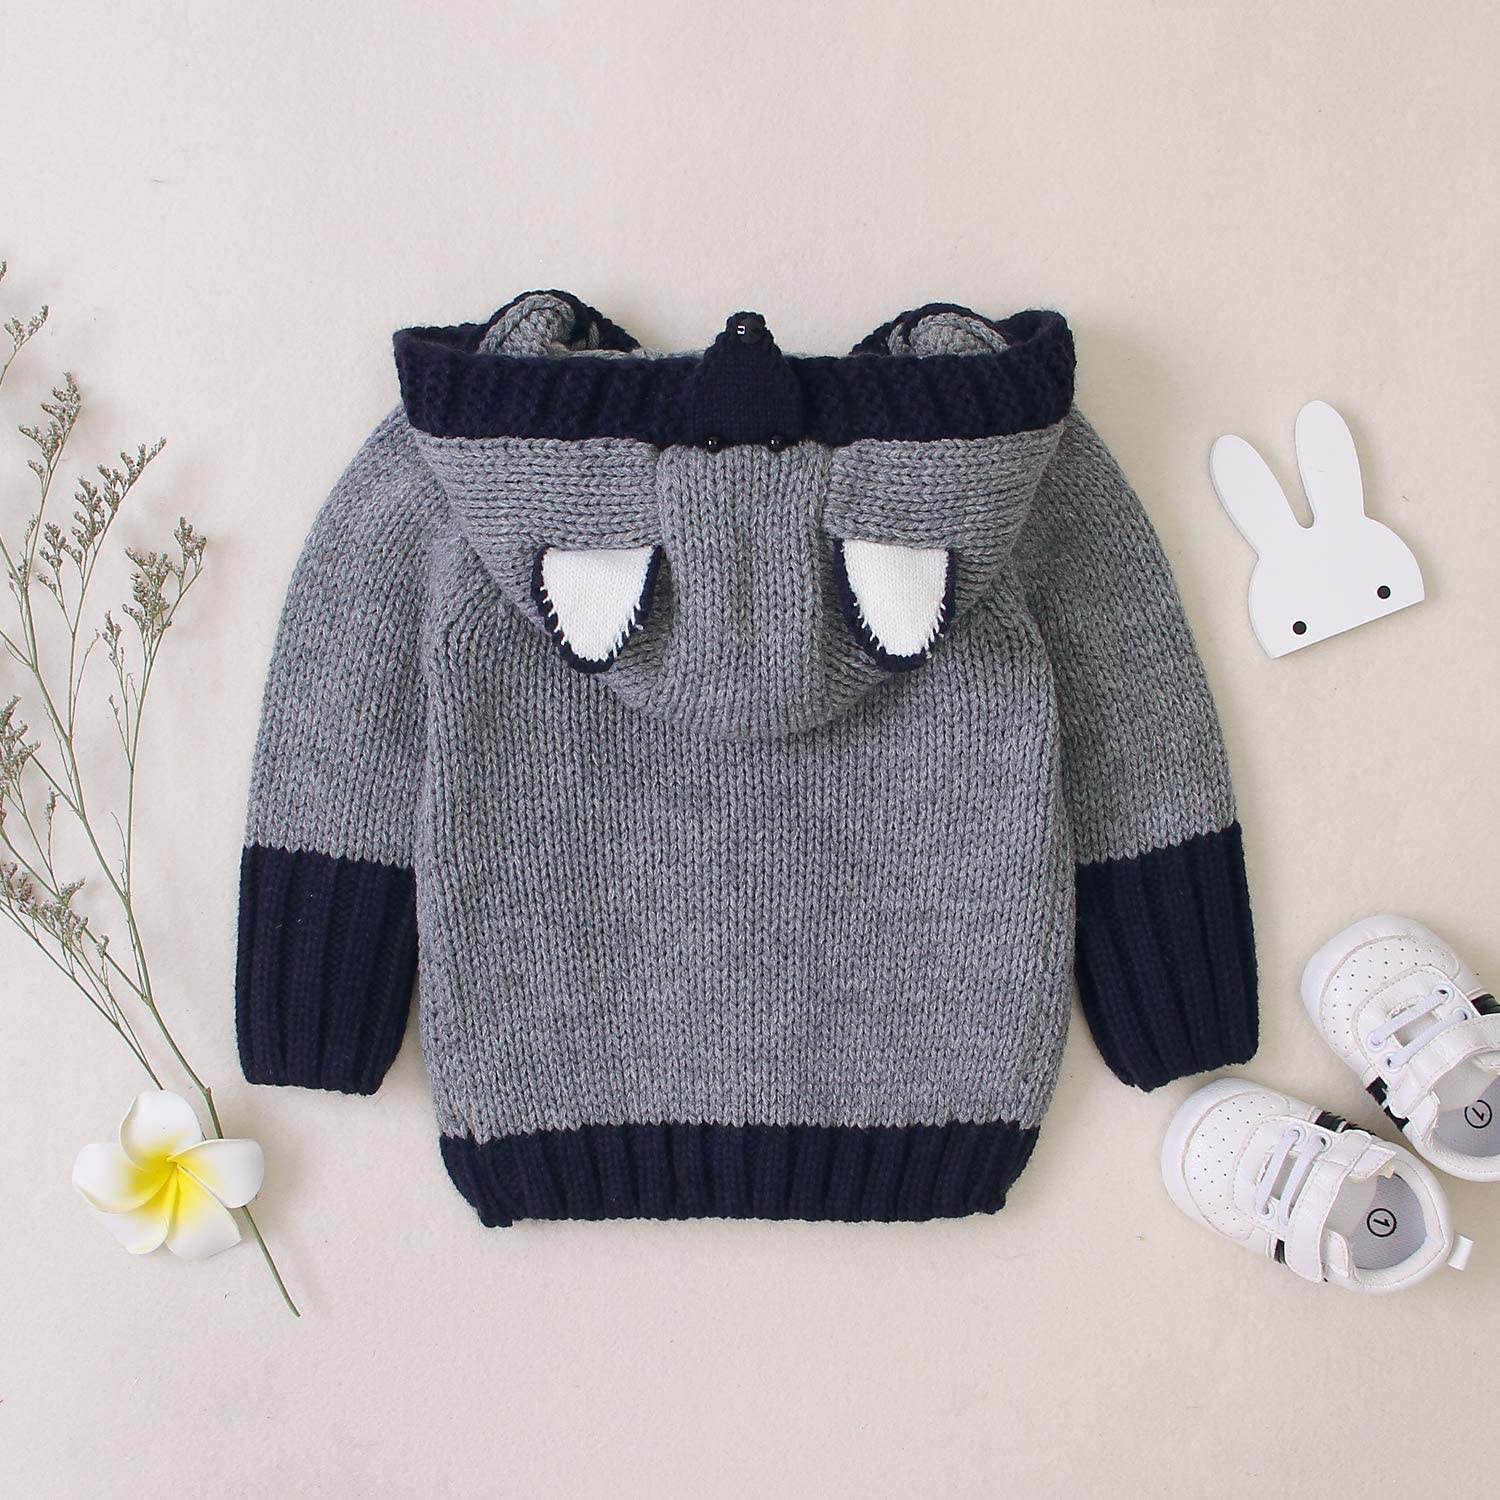 Unisex Baby Cardigan Sweater Cartoon Hoodies Long Sleeve Coats Baby Girl Boy Antumn Winter Clothes Outfit